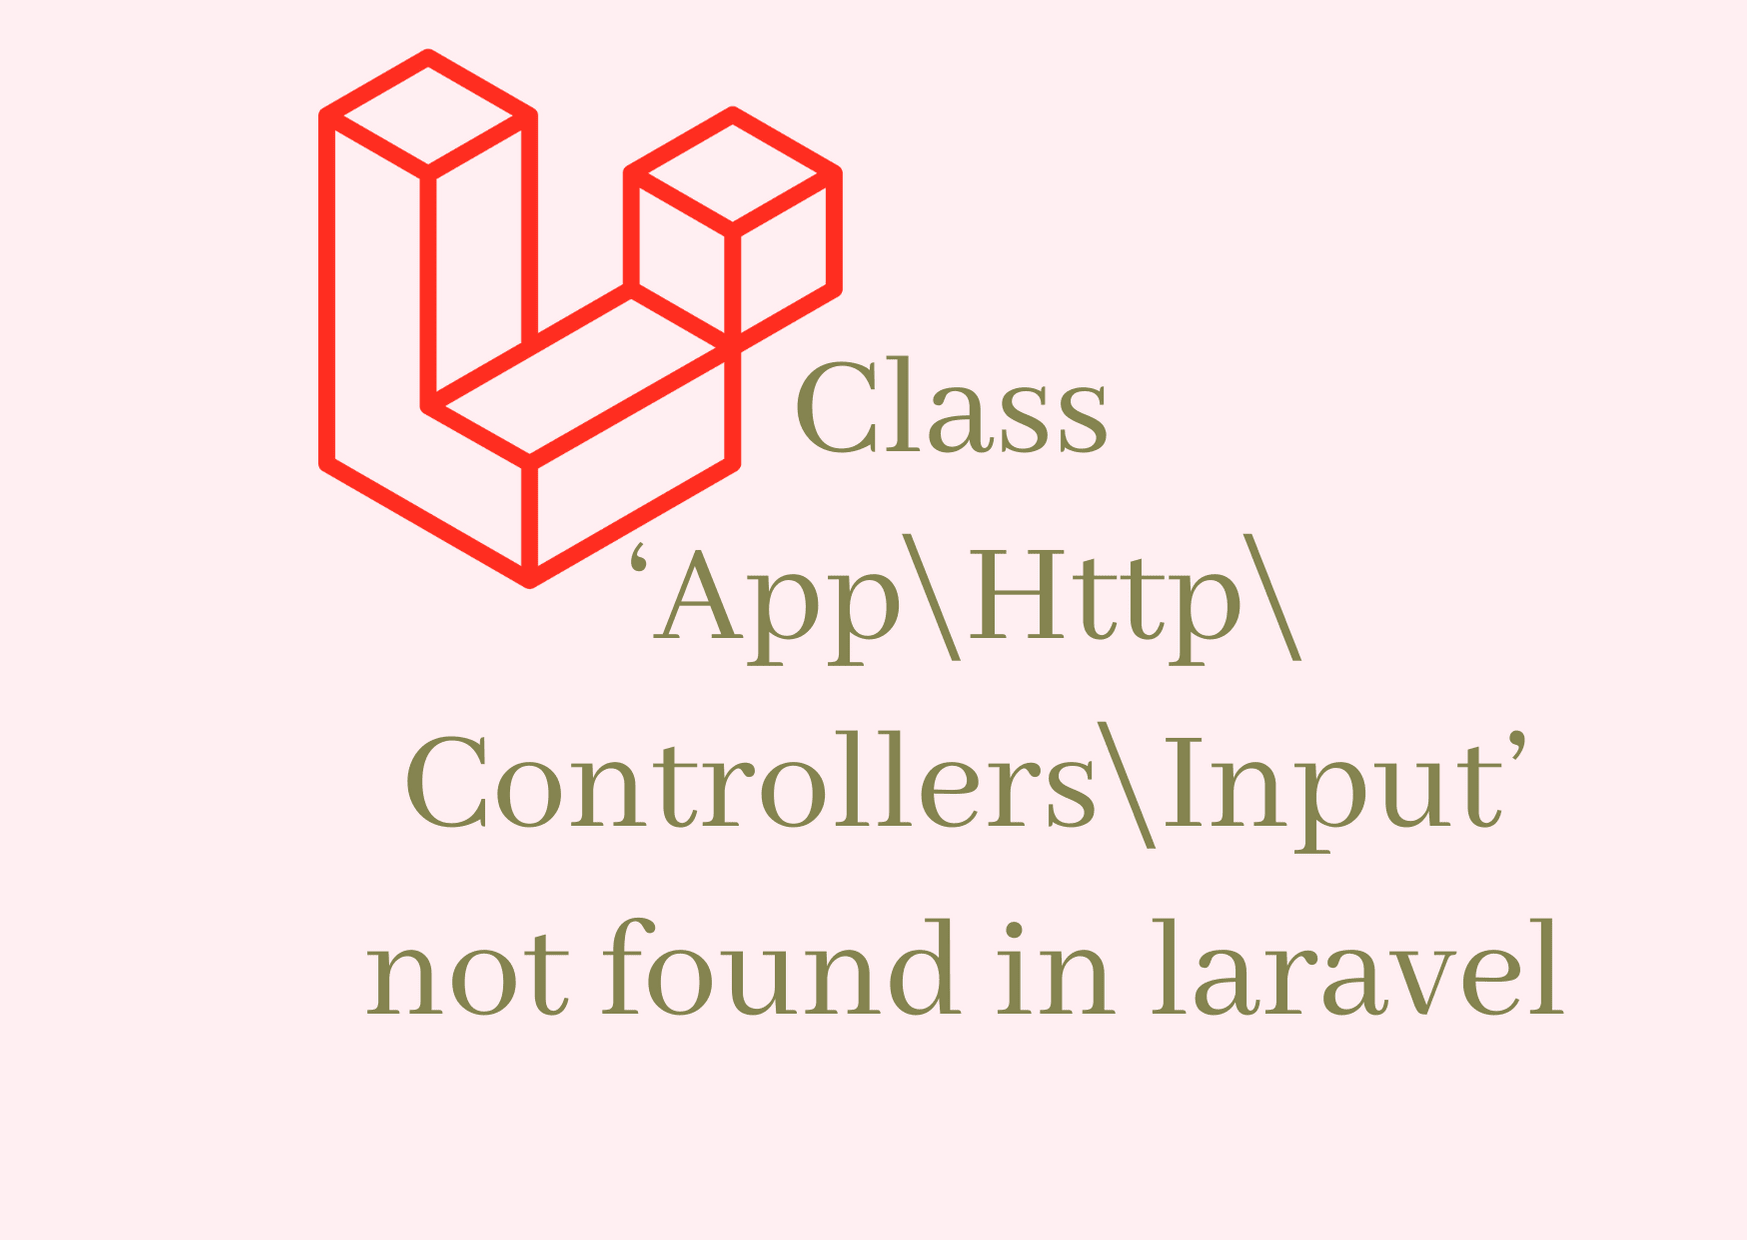 Class 'App\Http\Controllers\Input' not found in laravel